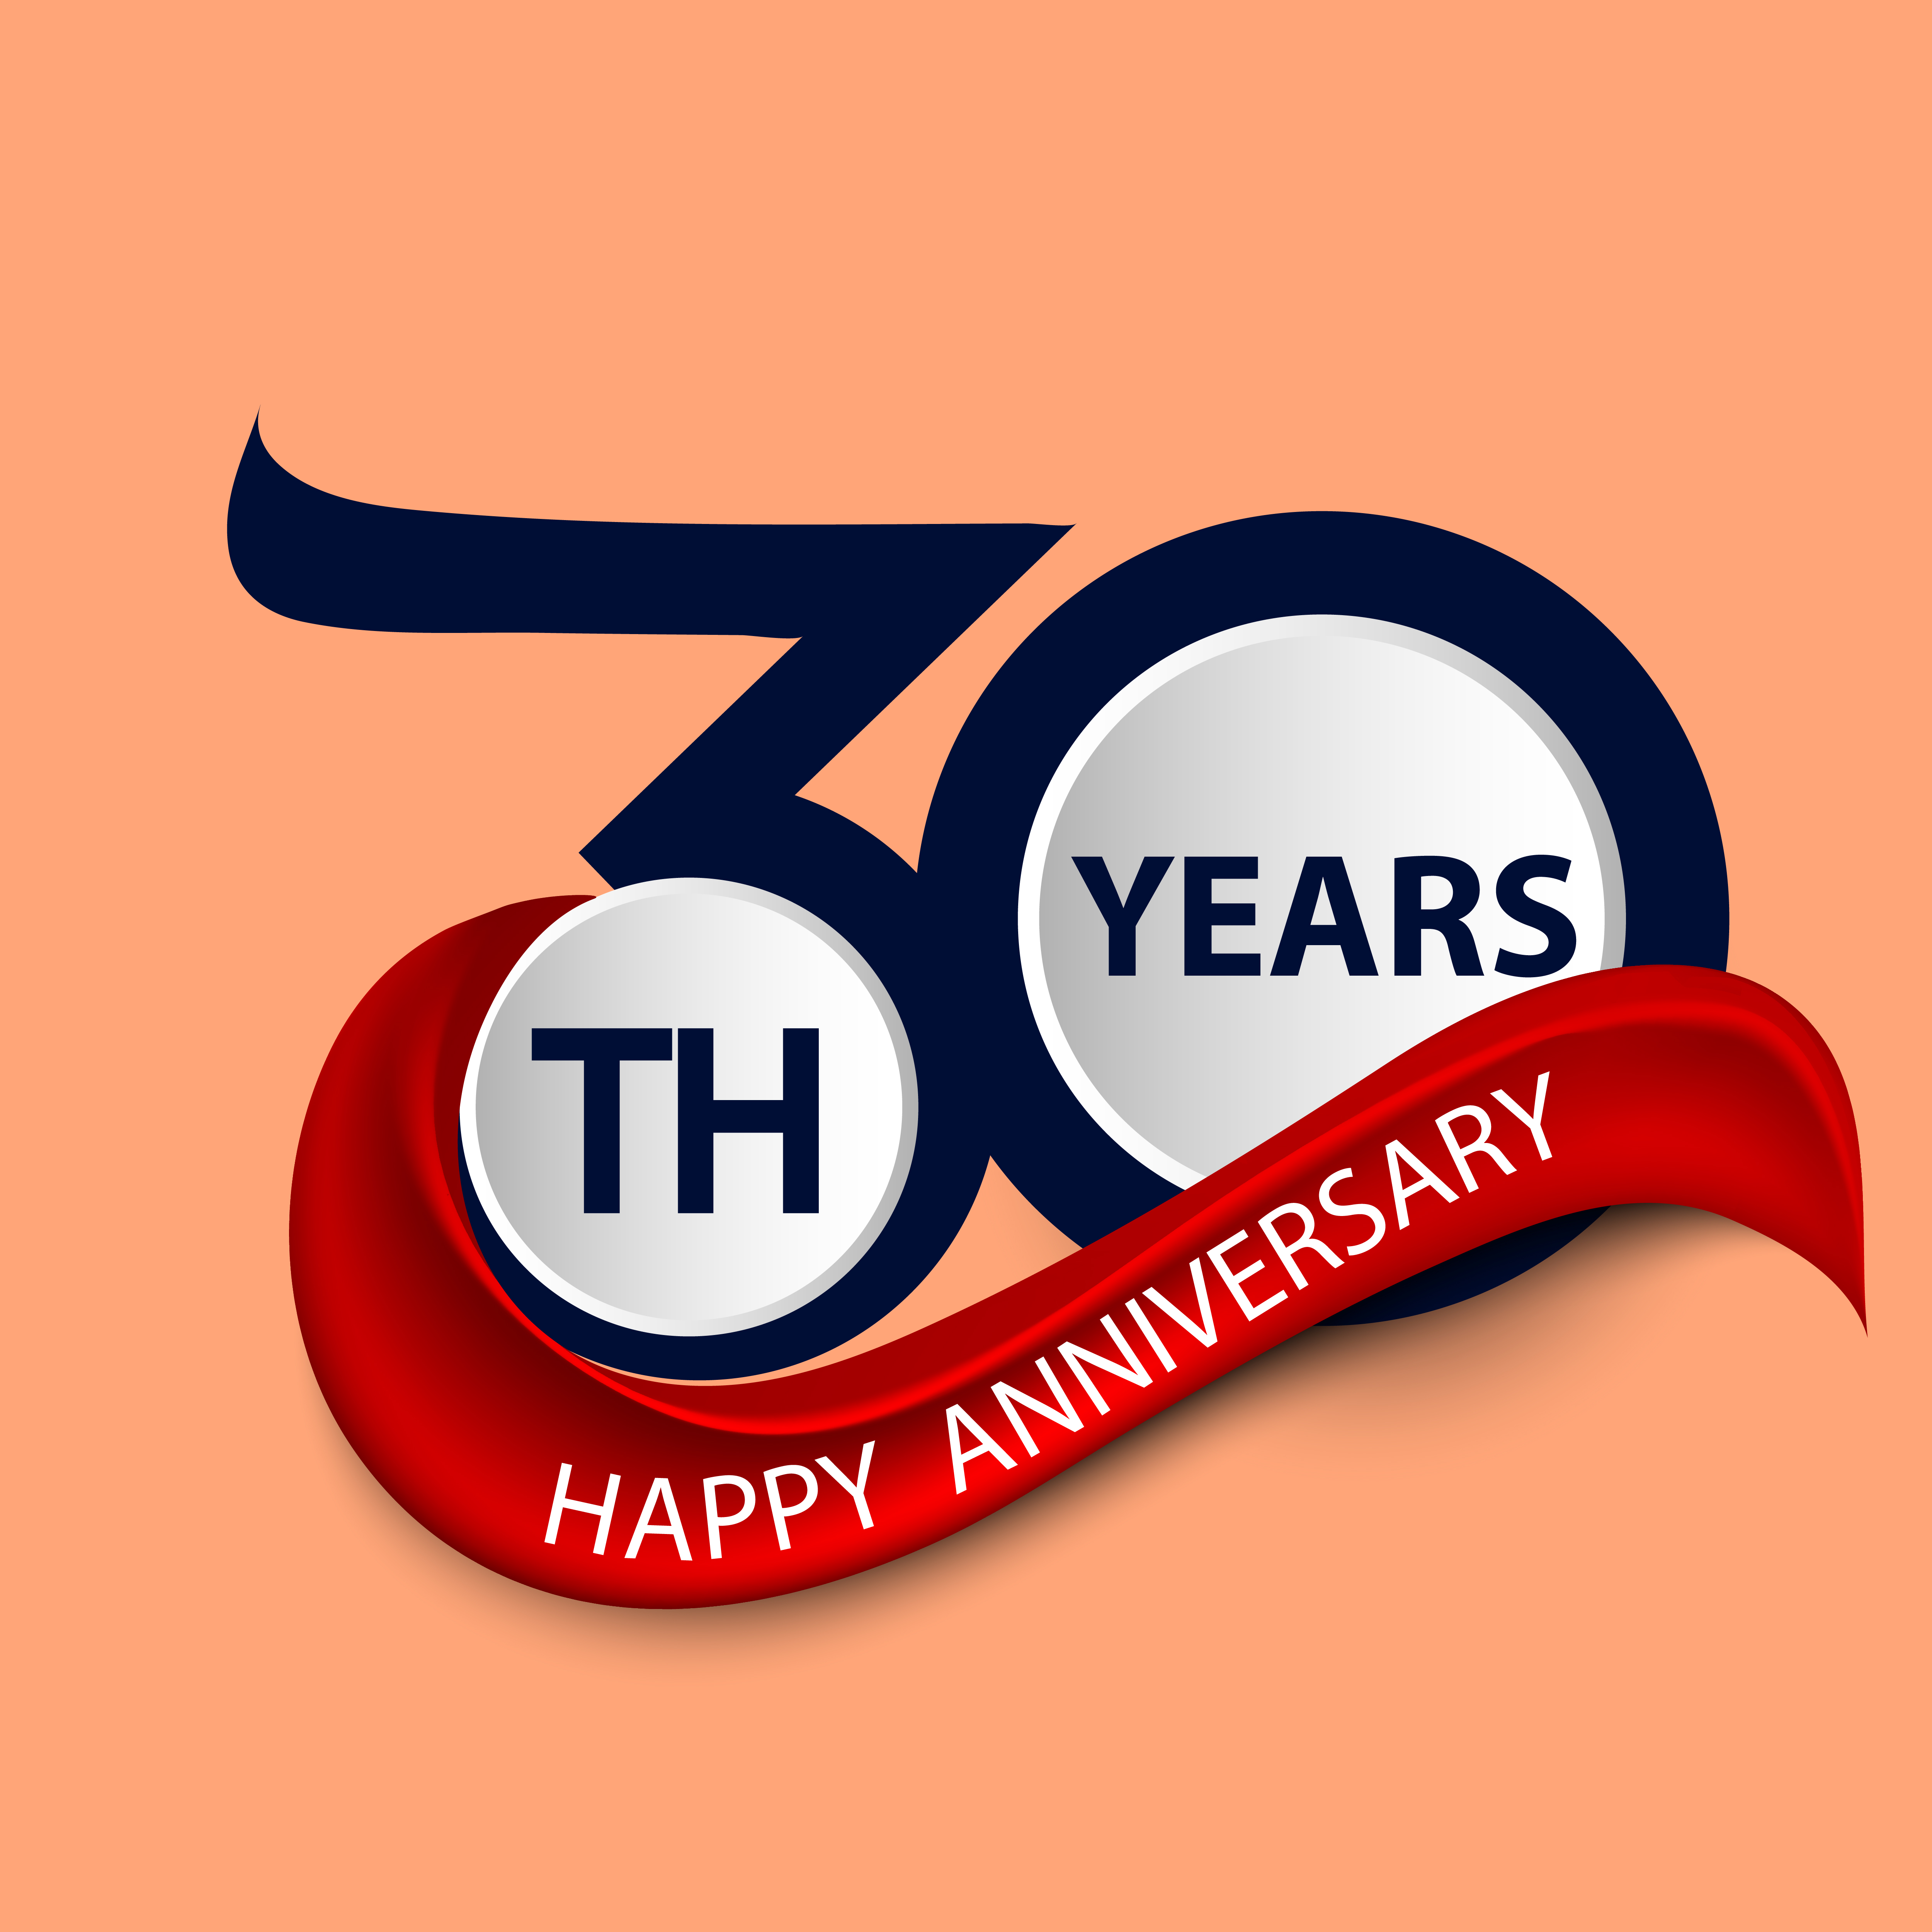 30 Year Anniversary Symbol: 30th Anniversary Sign And Logo Celebration Symbol With Red